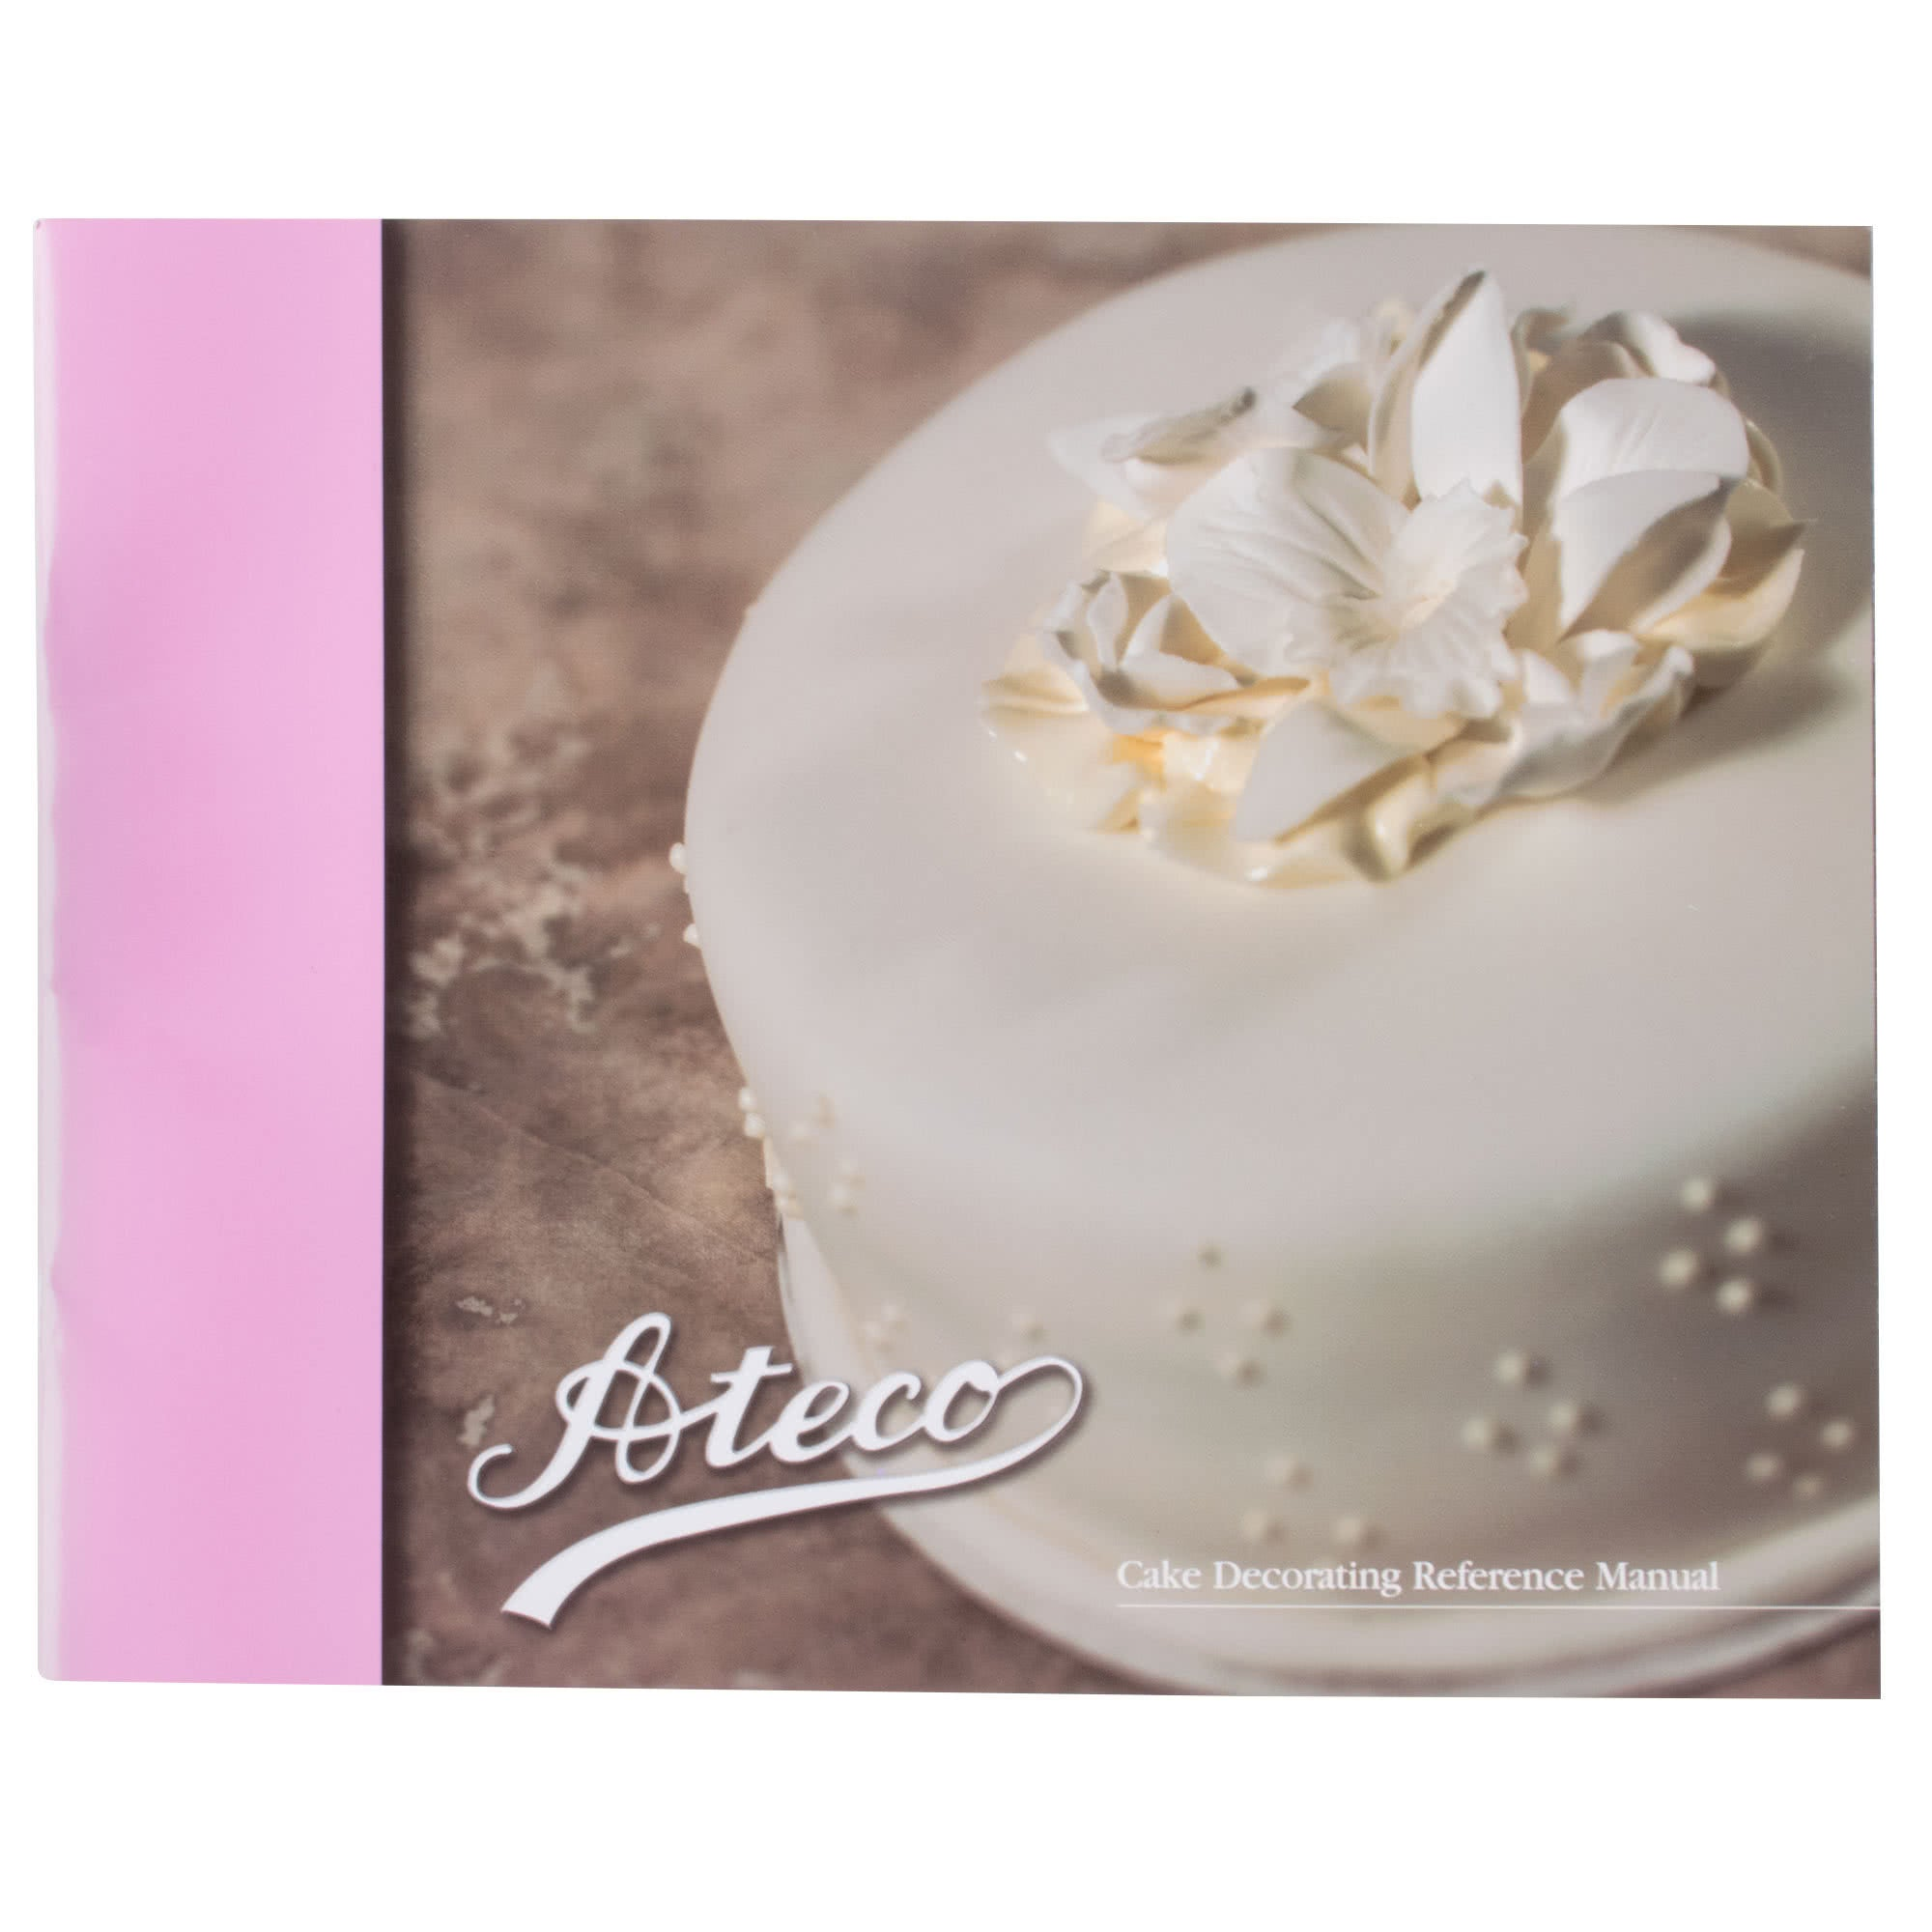 Ateco 486 Cake Decorating Reference Manual